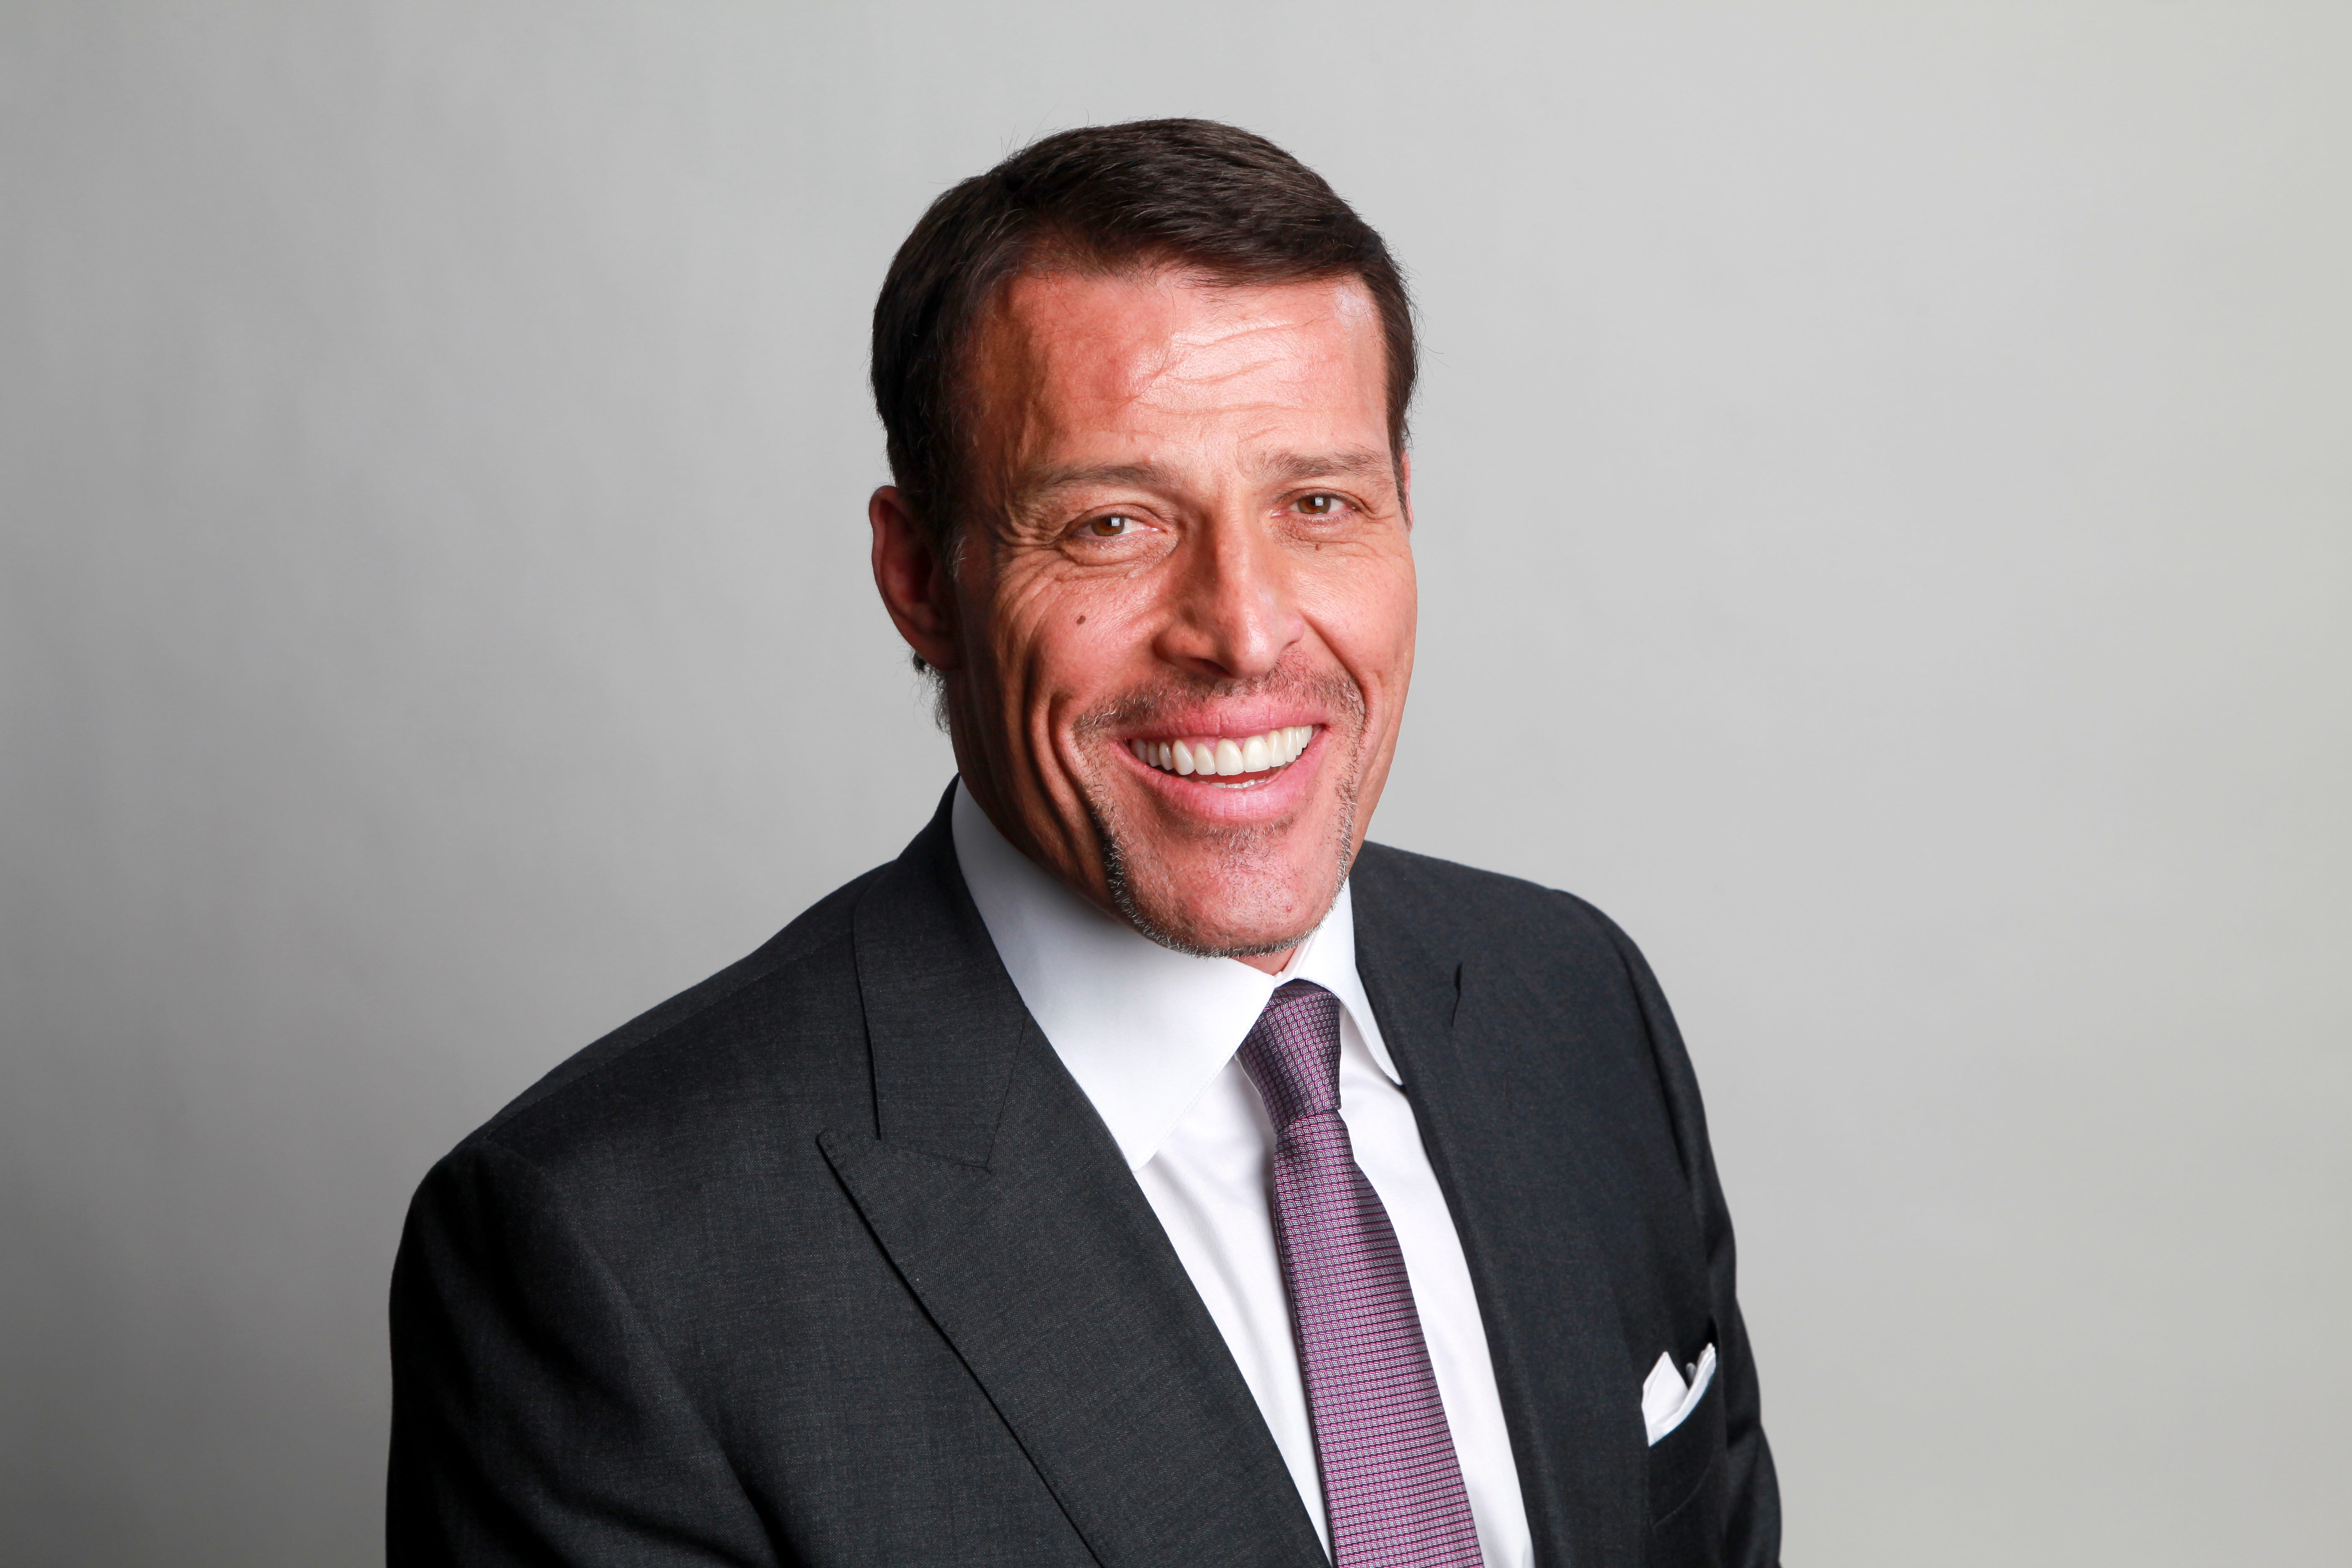 Four more women accuse Tony Robbins of sexual misconduct in BuzzFeed News investigation